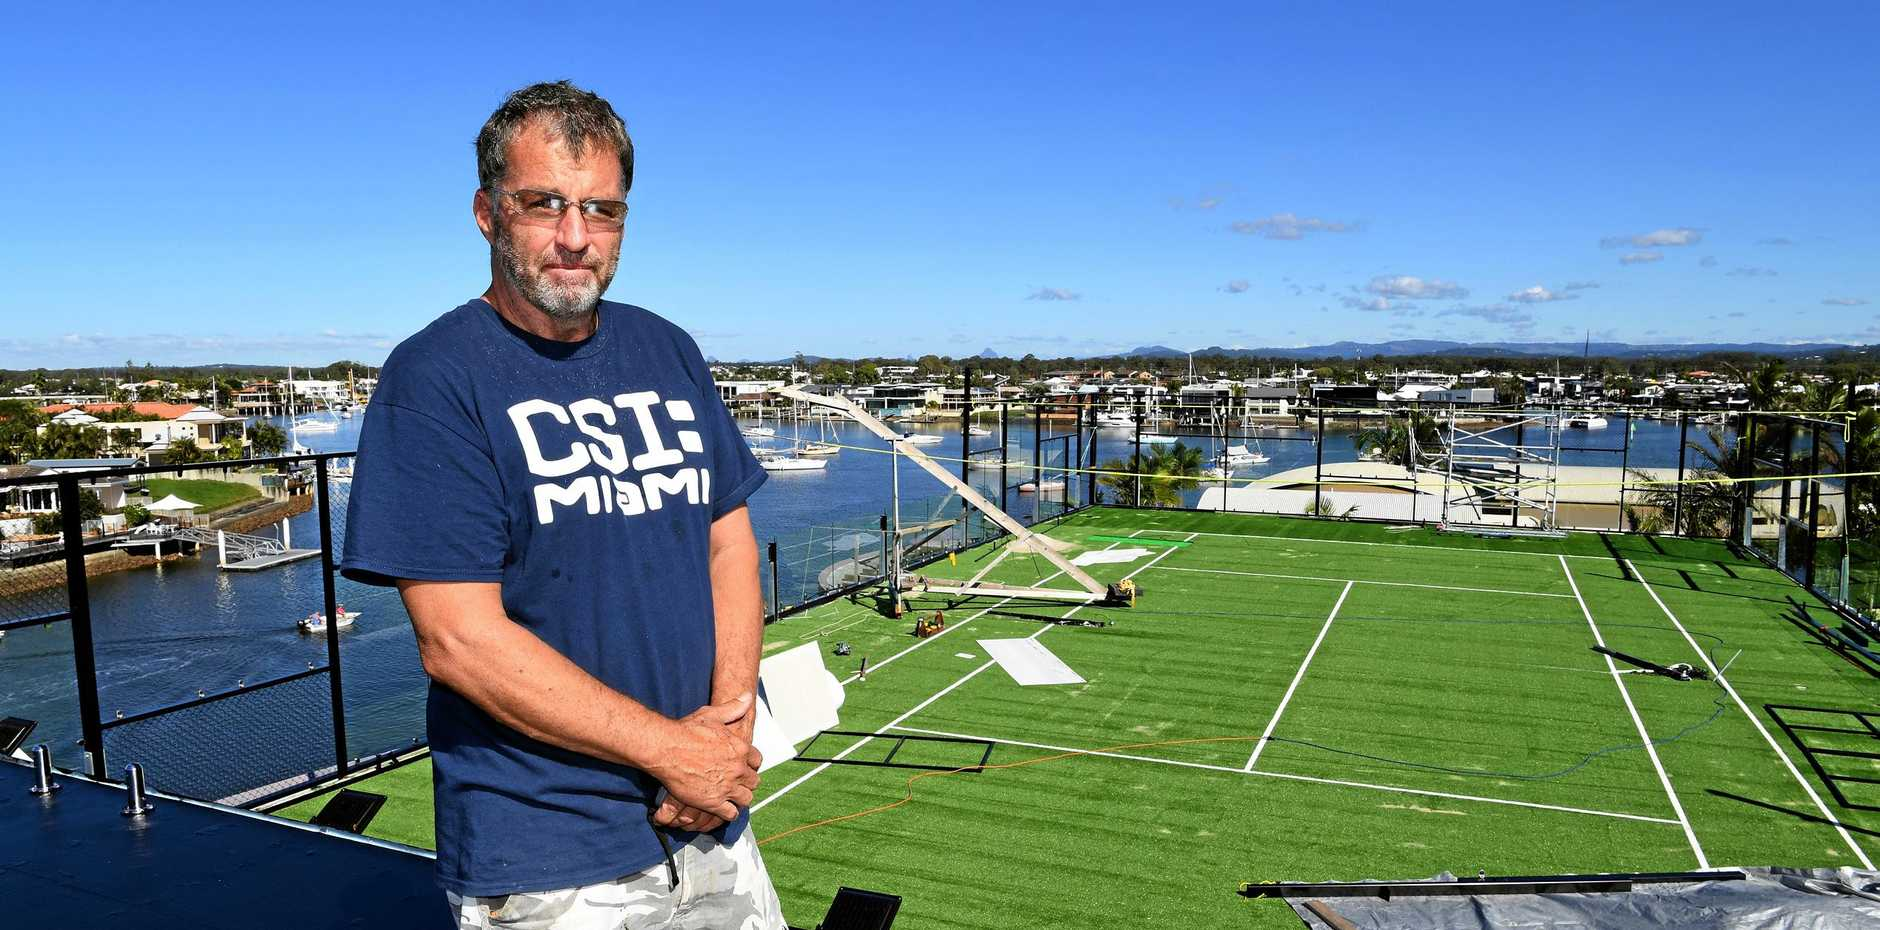 Wayne Dwyer is building a tennis court on top his his Minyama home. Some nearby residents have objected, while support has started to come in.